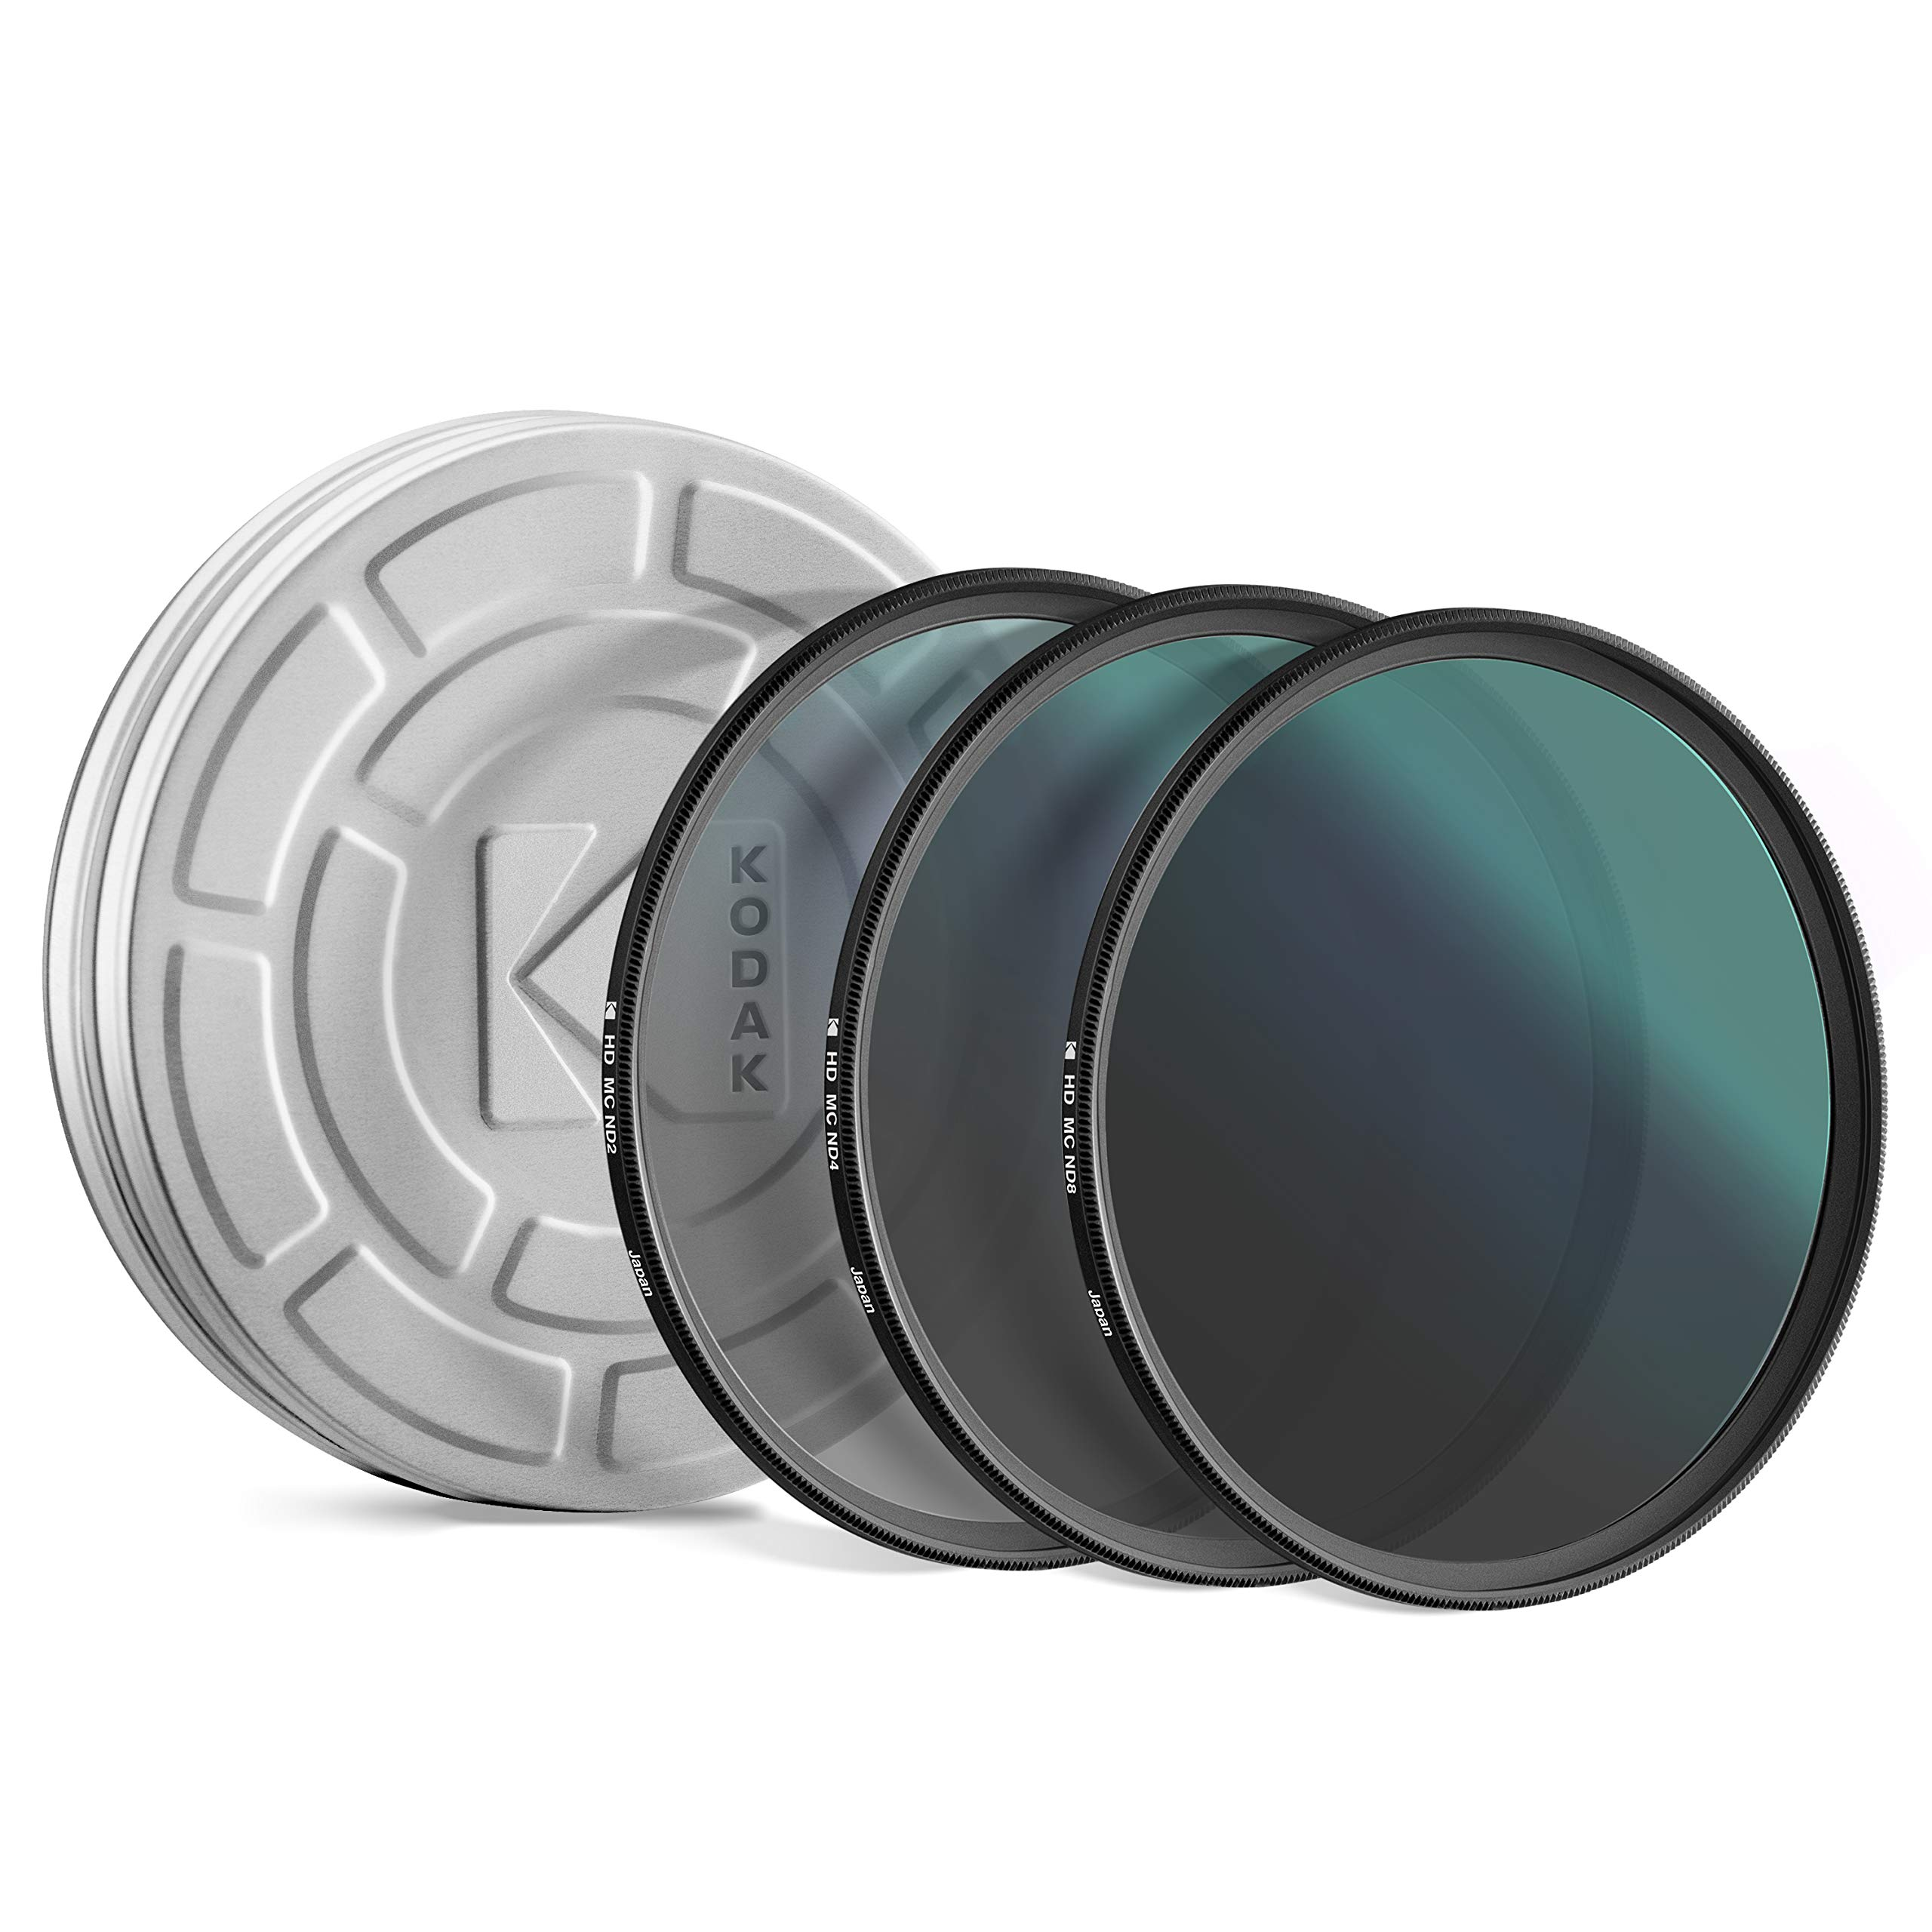 KODAK 55mm Neutral Density Filter Set | Pack of [3] ND2, ND4 & ND8 Filters | Prevent Overexposure Achieve Shallow Depth of Field Capture Motion Blur | Slim, Polished, Multi-Coated Glass & Mini Guide